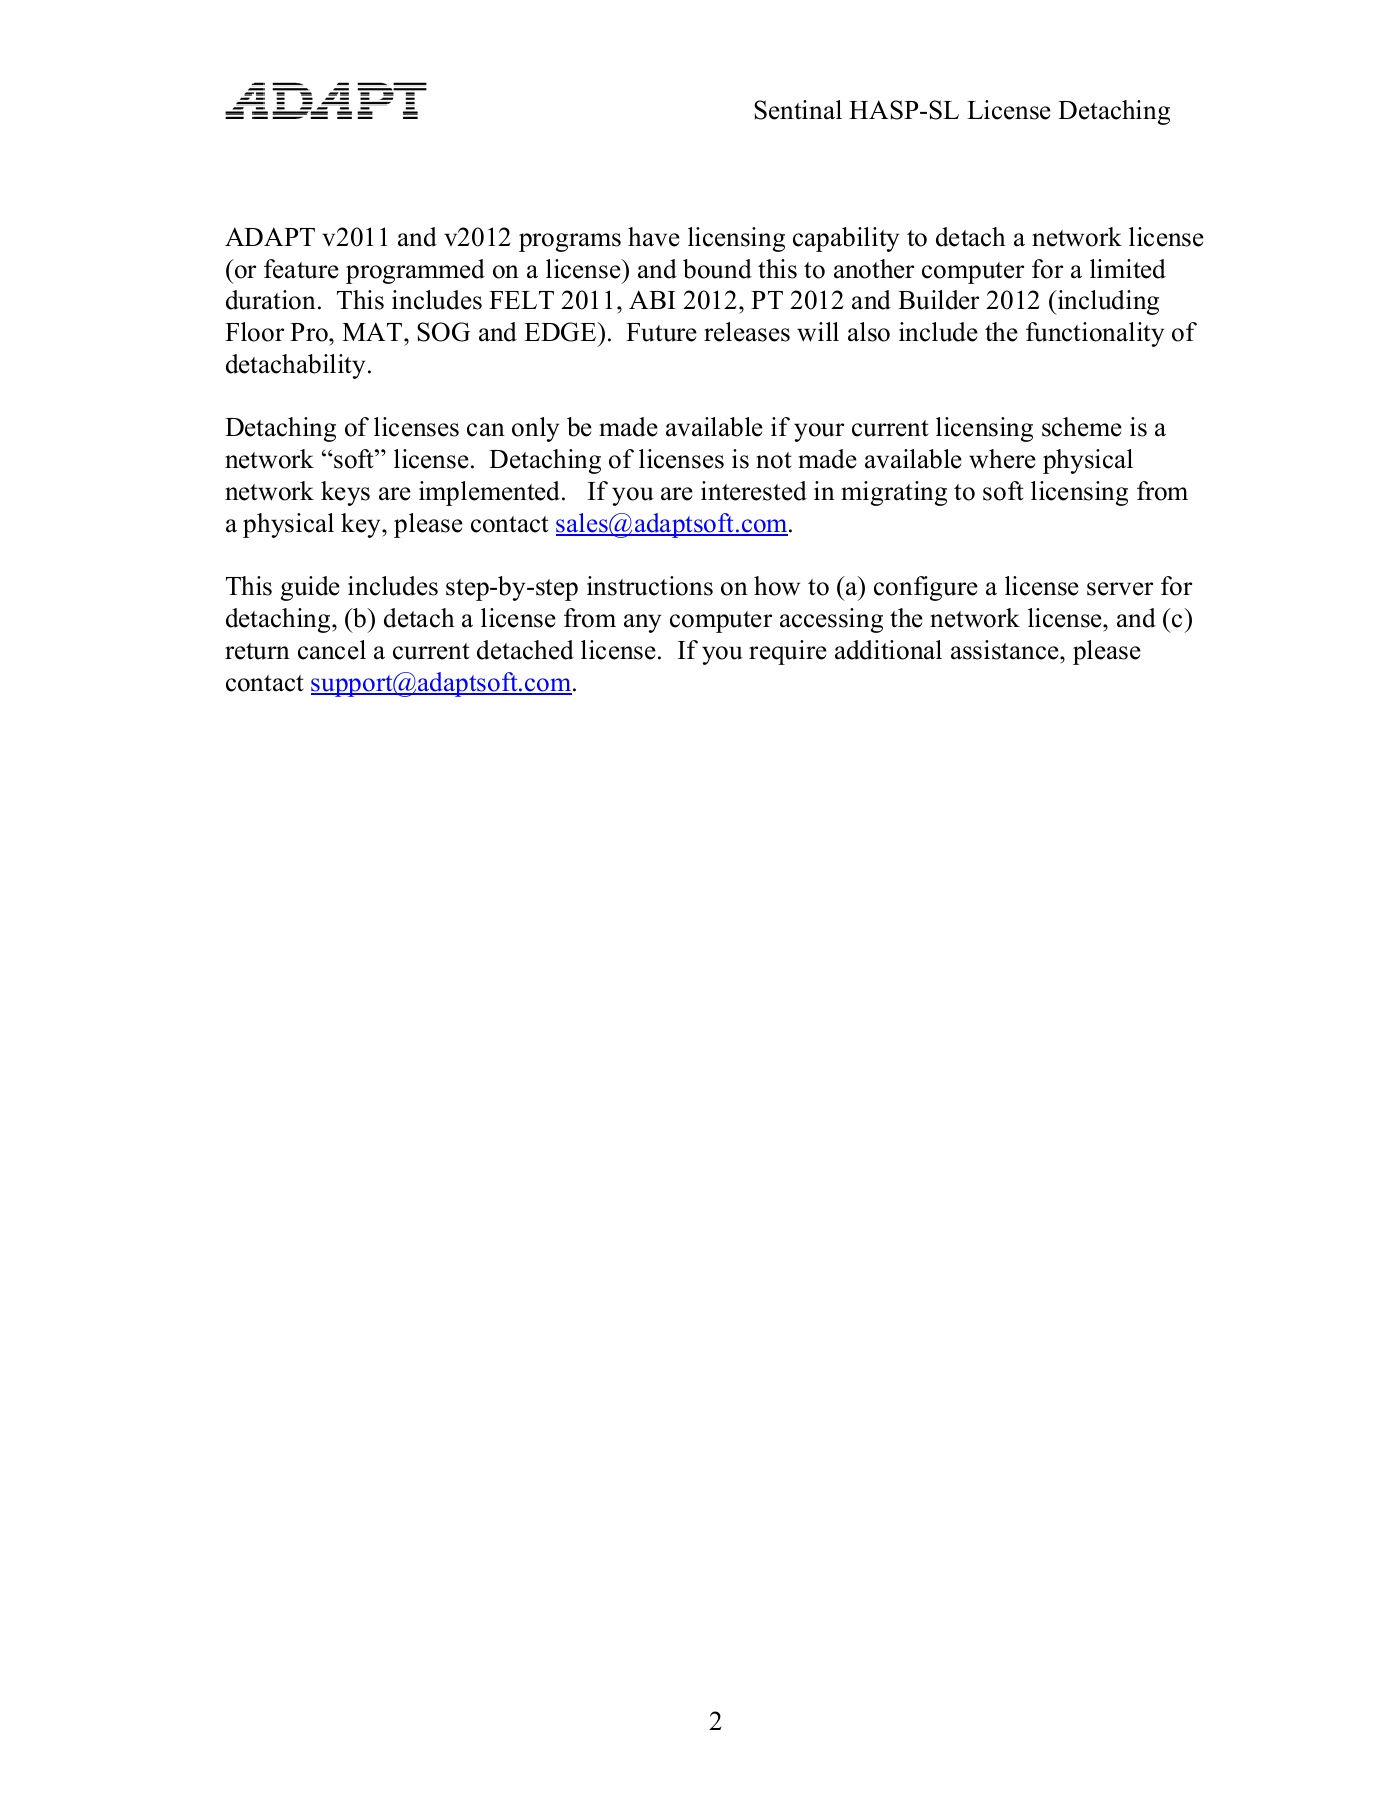 Sentinel HASP-SL Network Licensing Pages 1 - 8 - Text